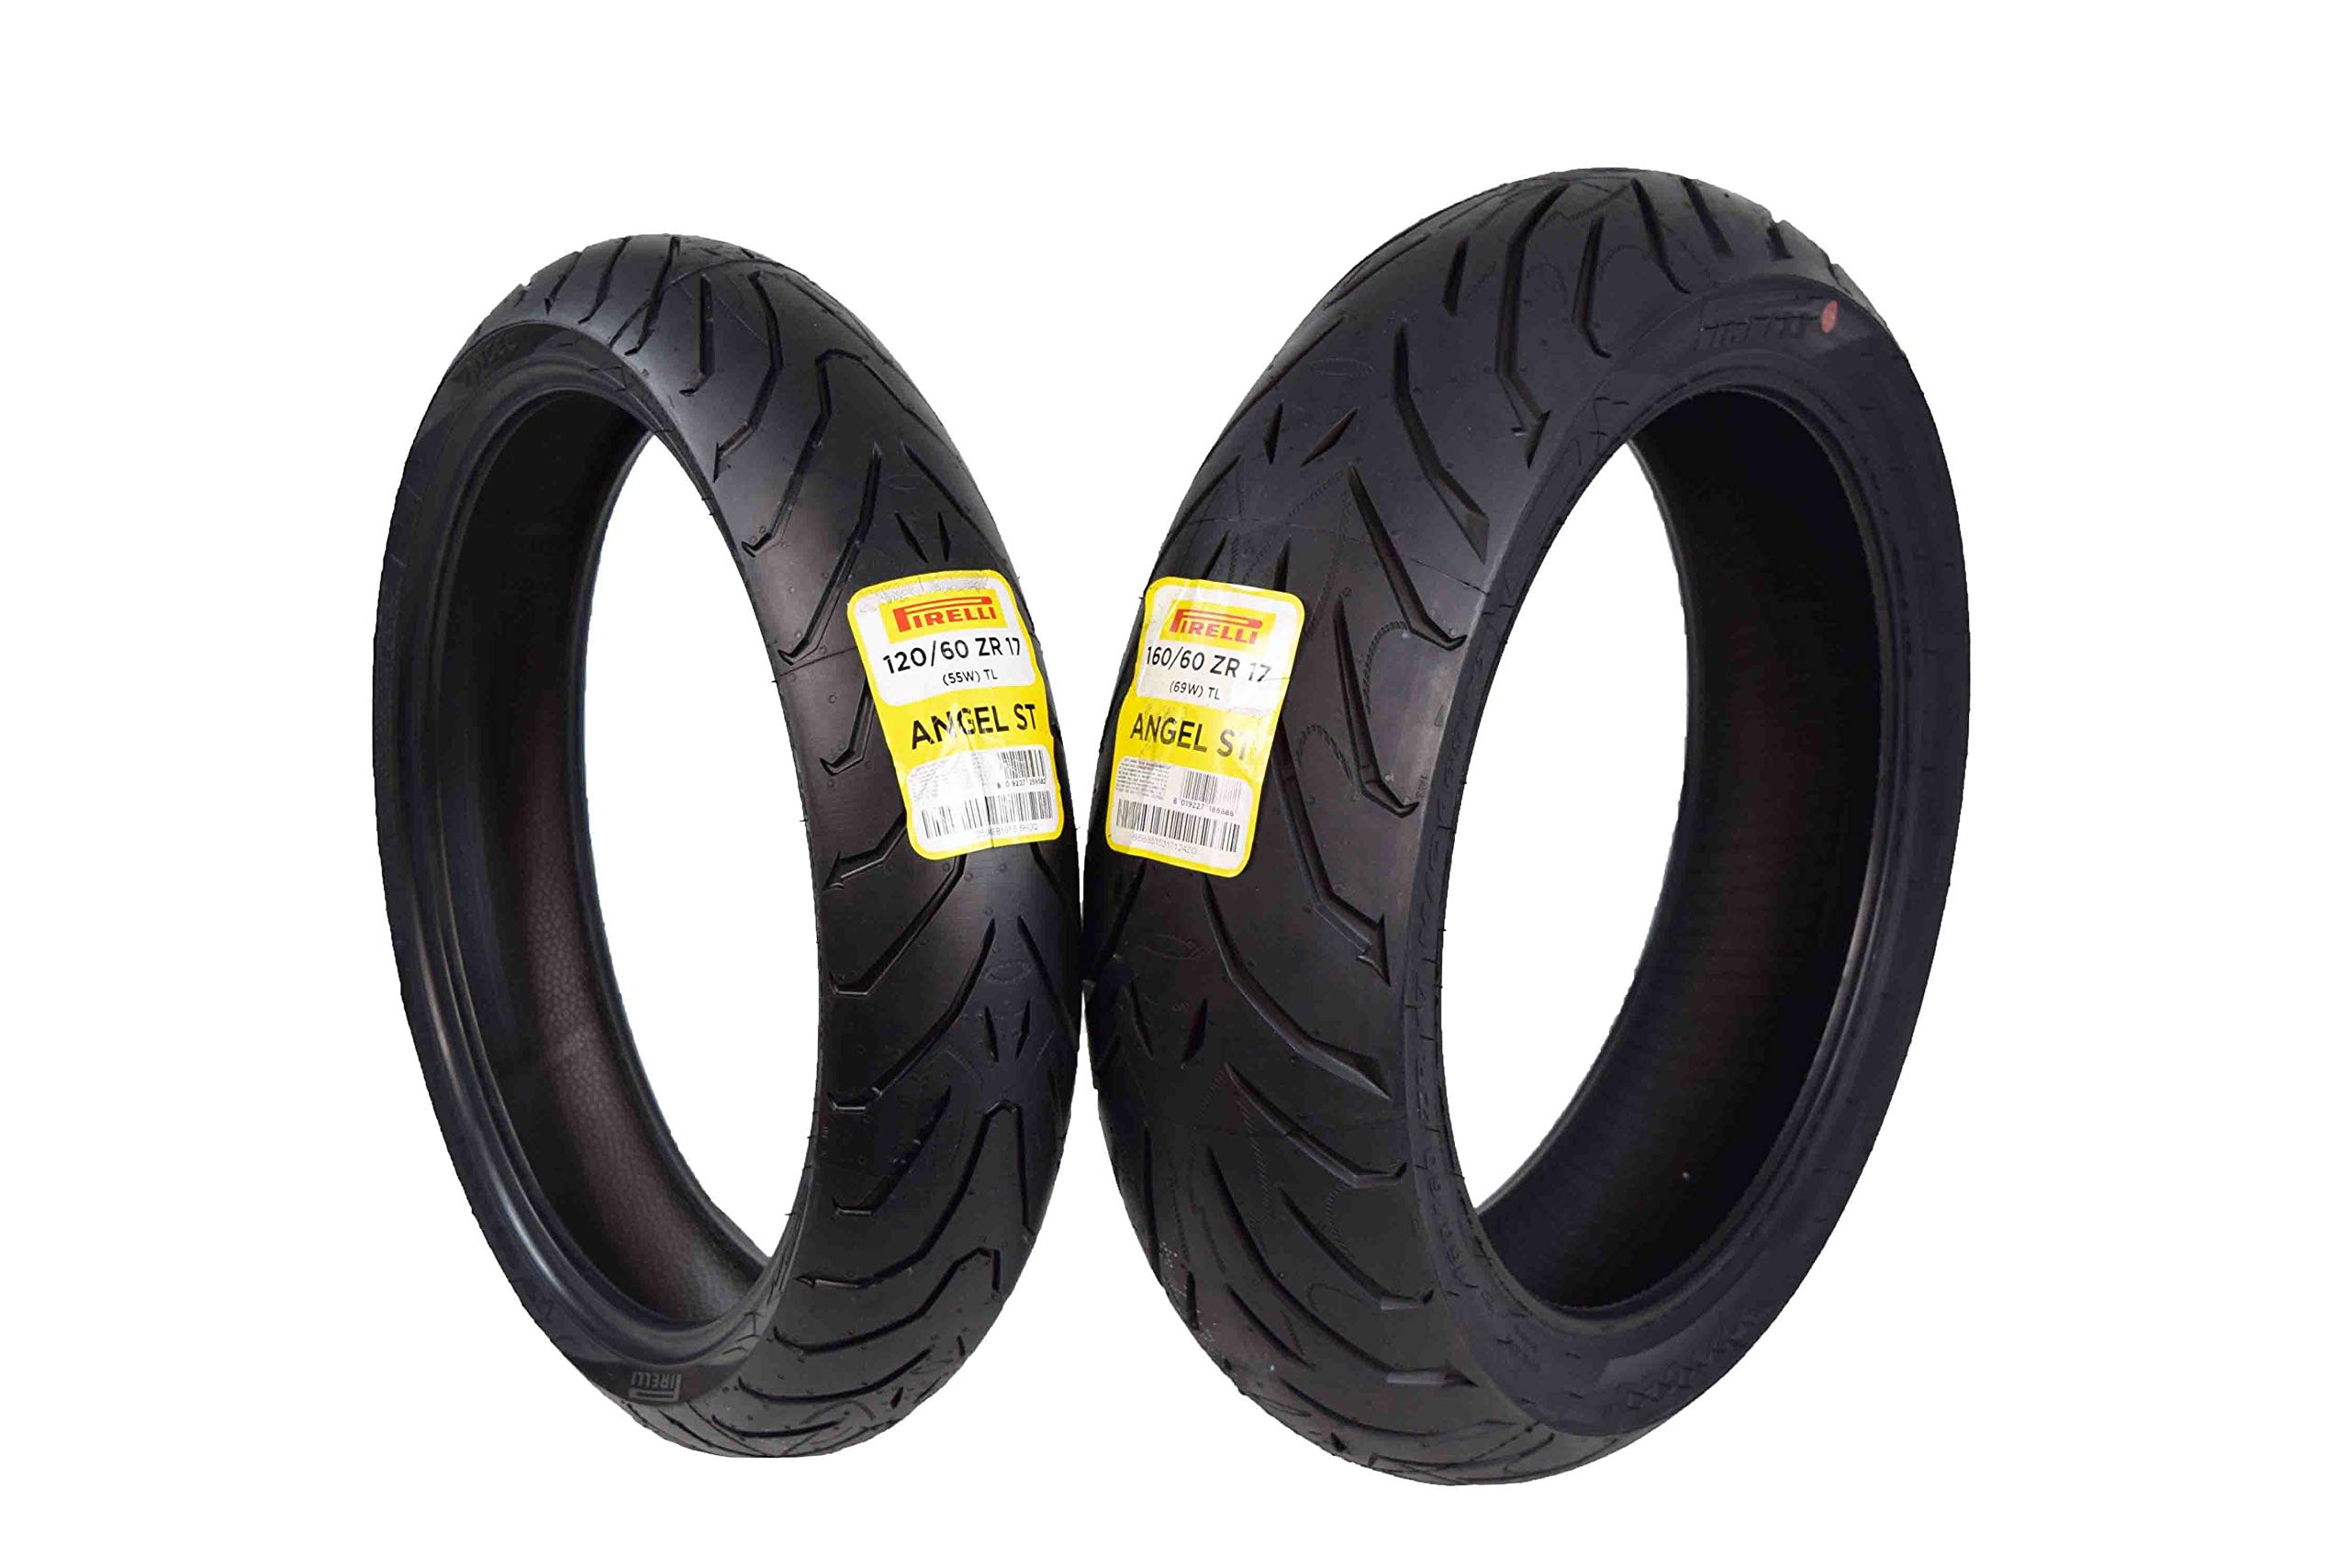 Pirelli Angel ST Front & Rear Street Sport Touring Motorcycle Tires (1x Front 120/60ZR17 1x Rear 160/60ZR17)